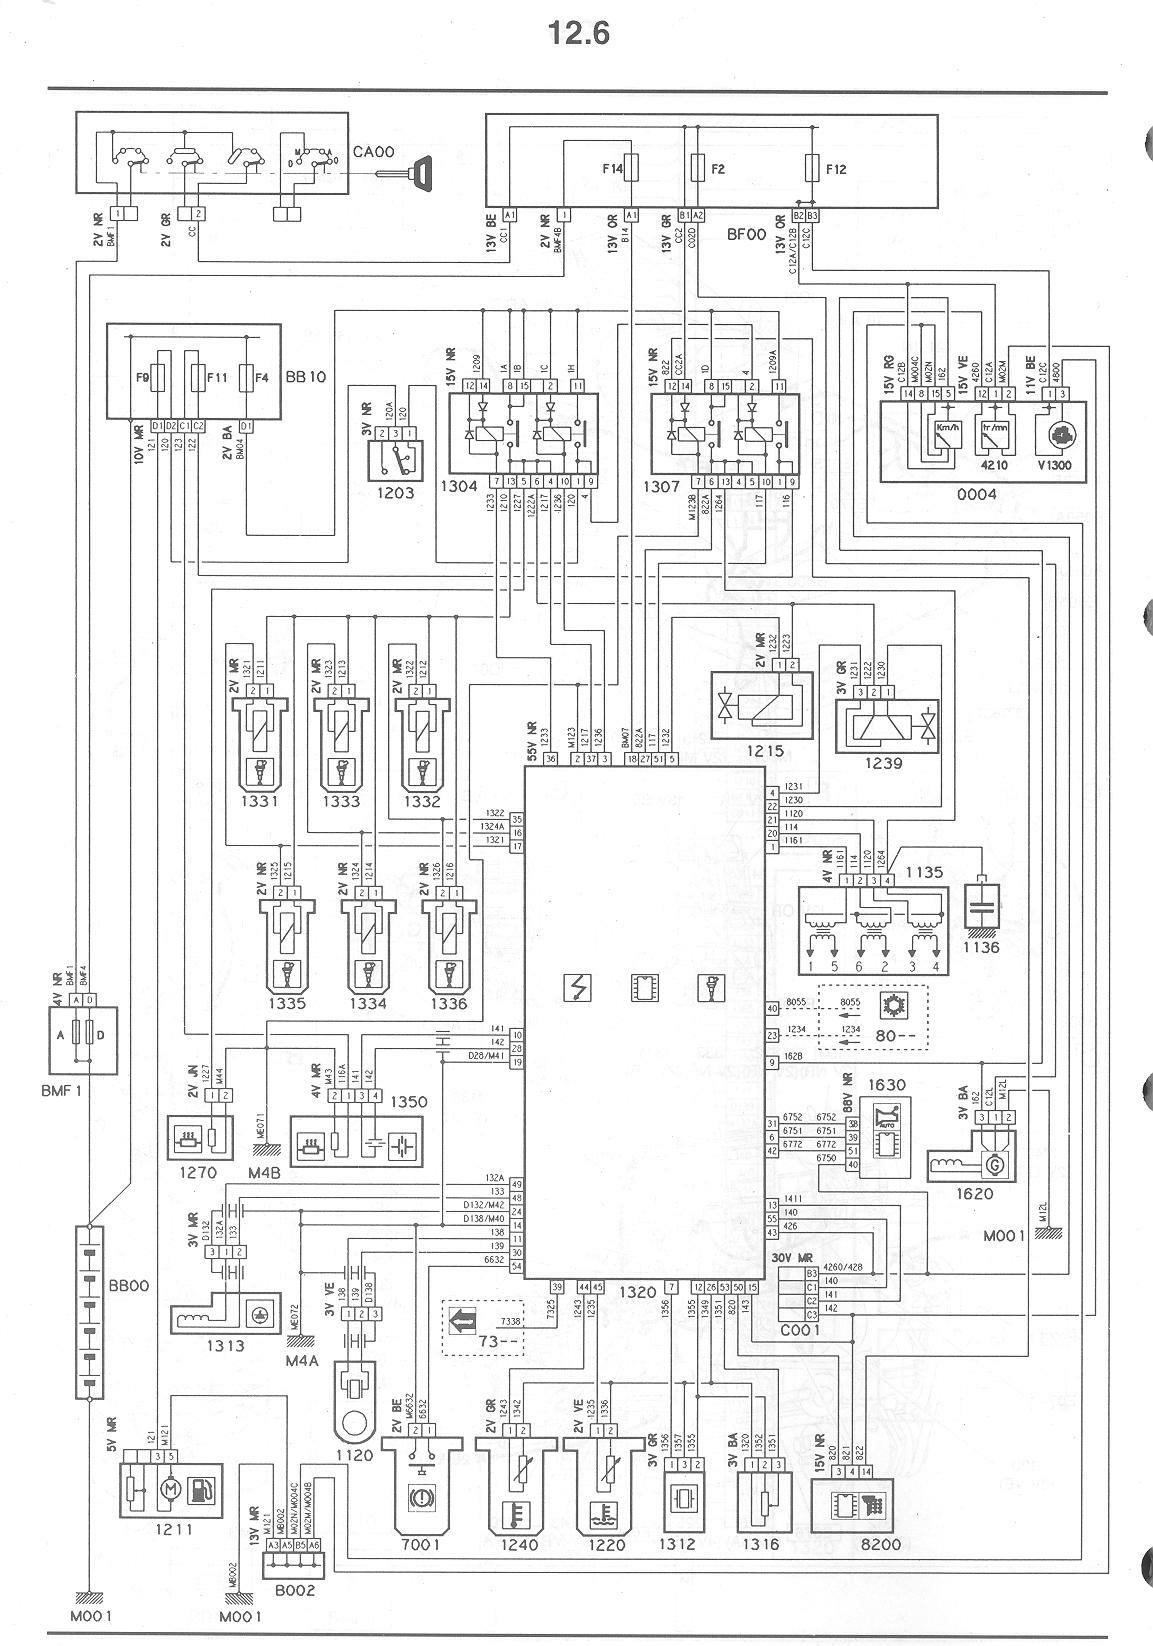 Citroen xm forum view topic wiring diagram for keypad xantia v6 engine ecu circuit asfbconference2016 Gallery